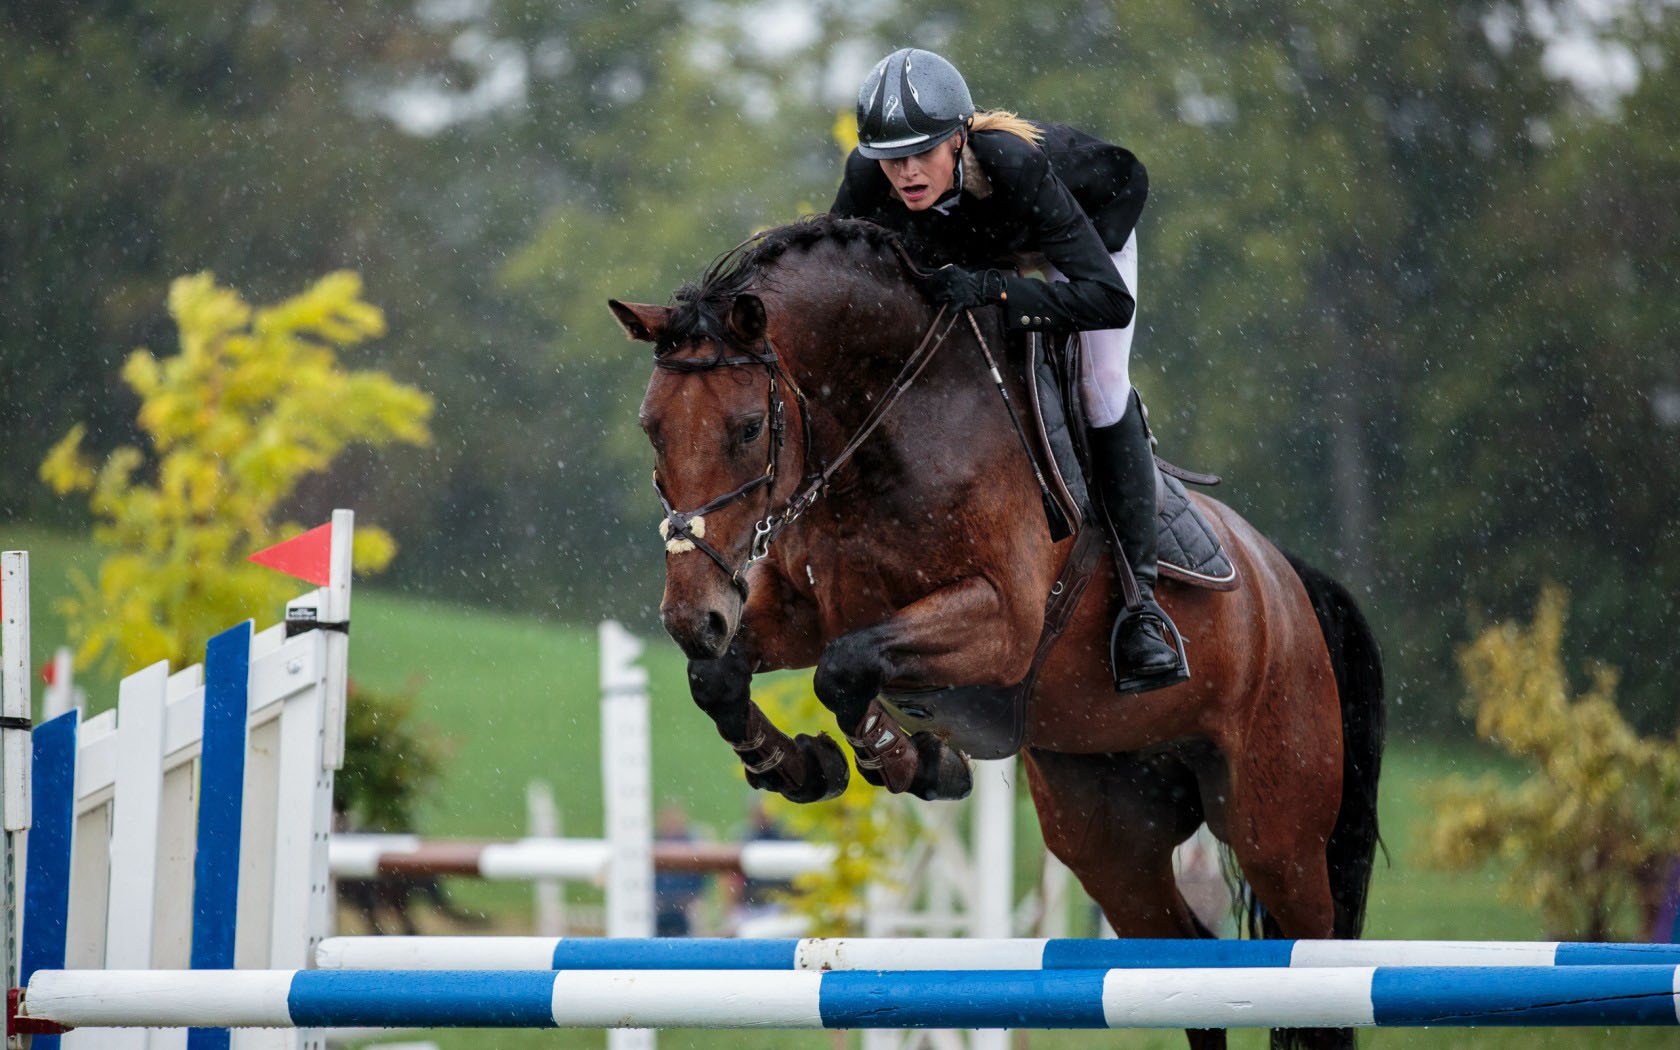 1680x1050 - Show Jumping Wallpapers 17